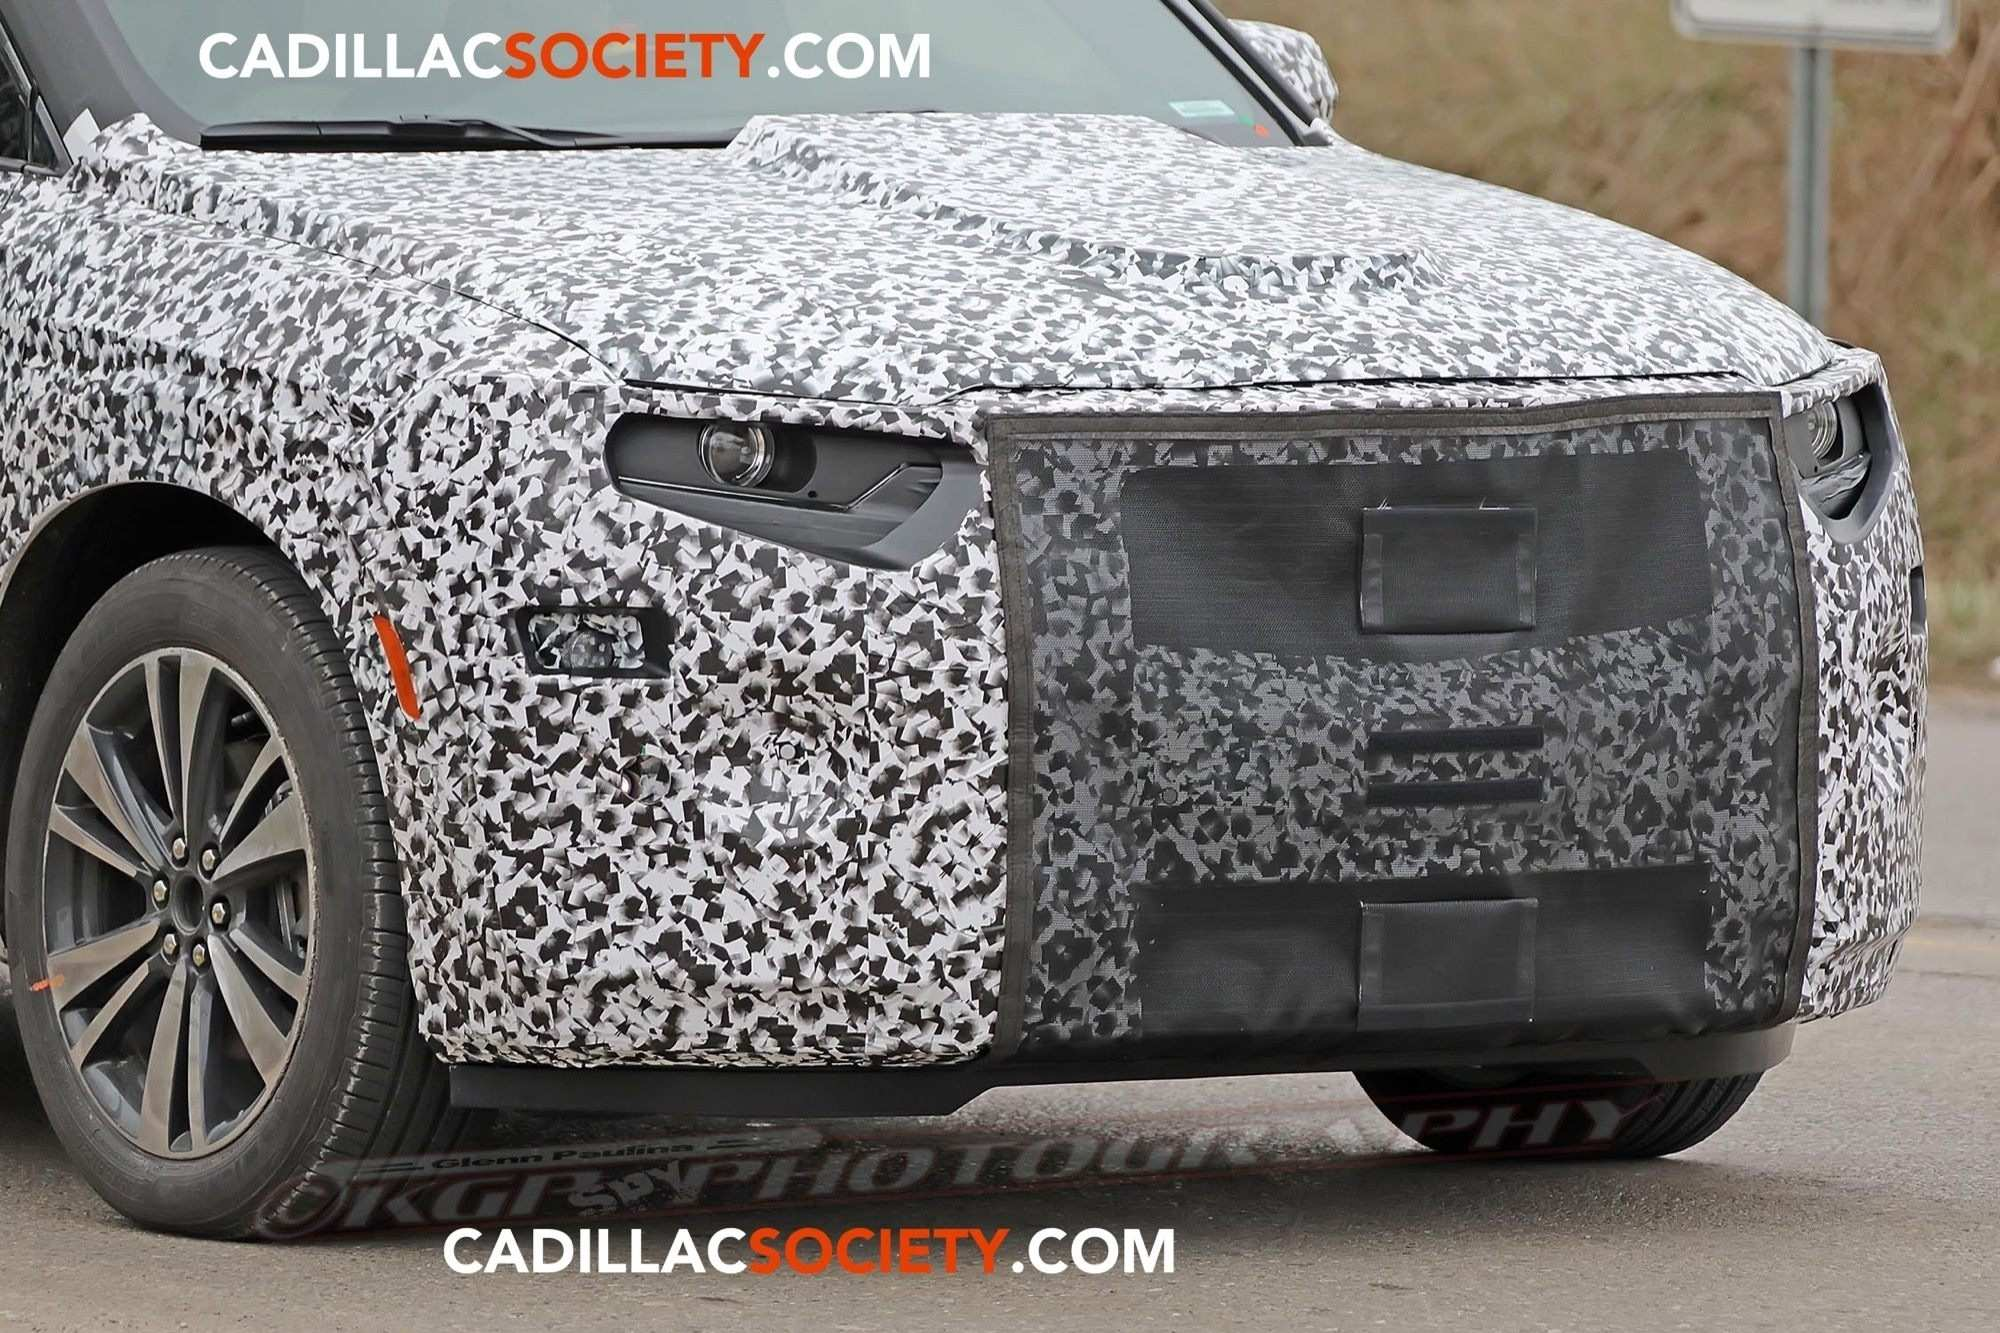 12 Concept of 2020 Cadillac SRXSpy Photos Model with 2020 Cadillac SRXSpy Photos